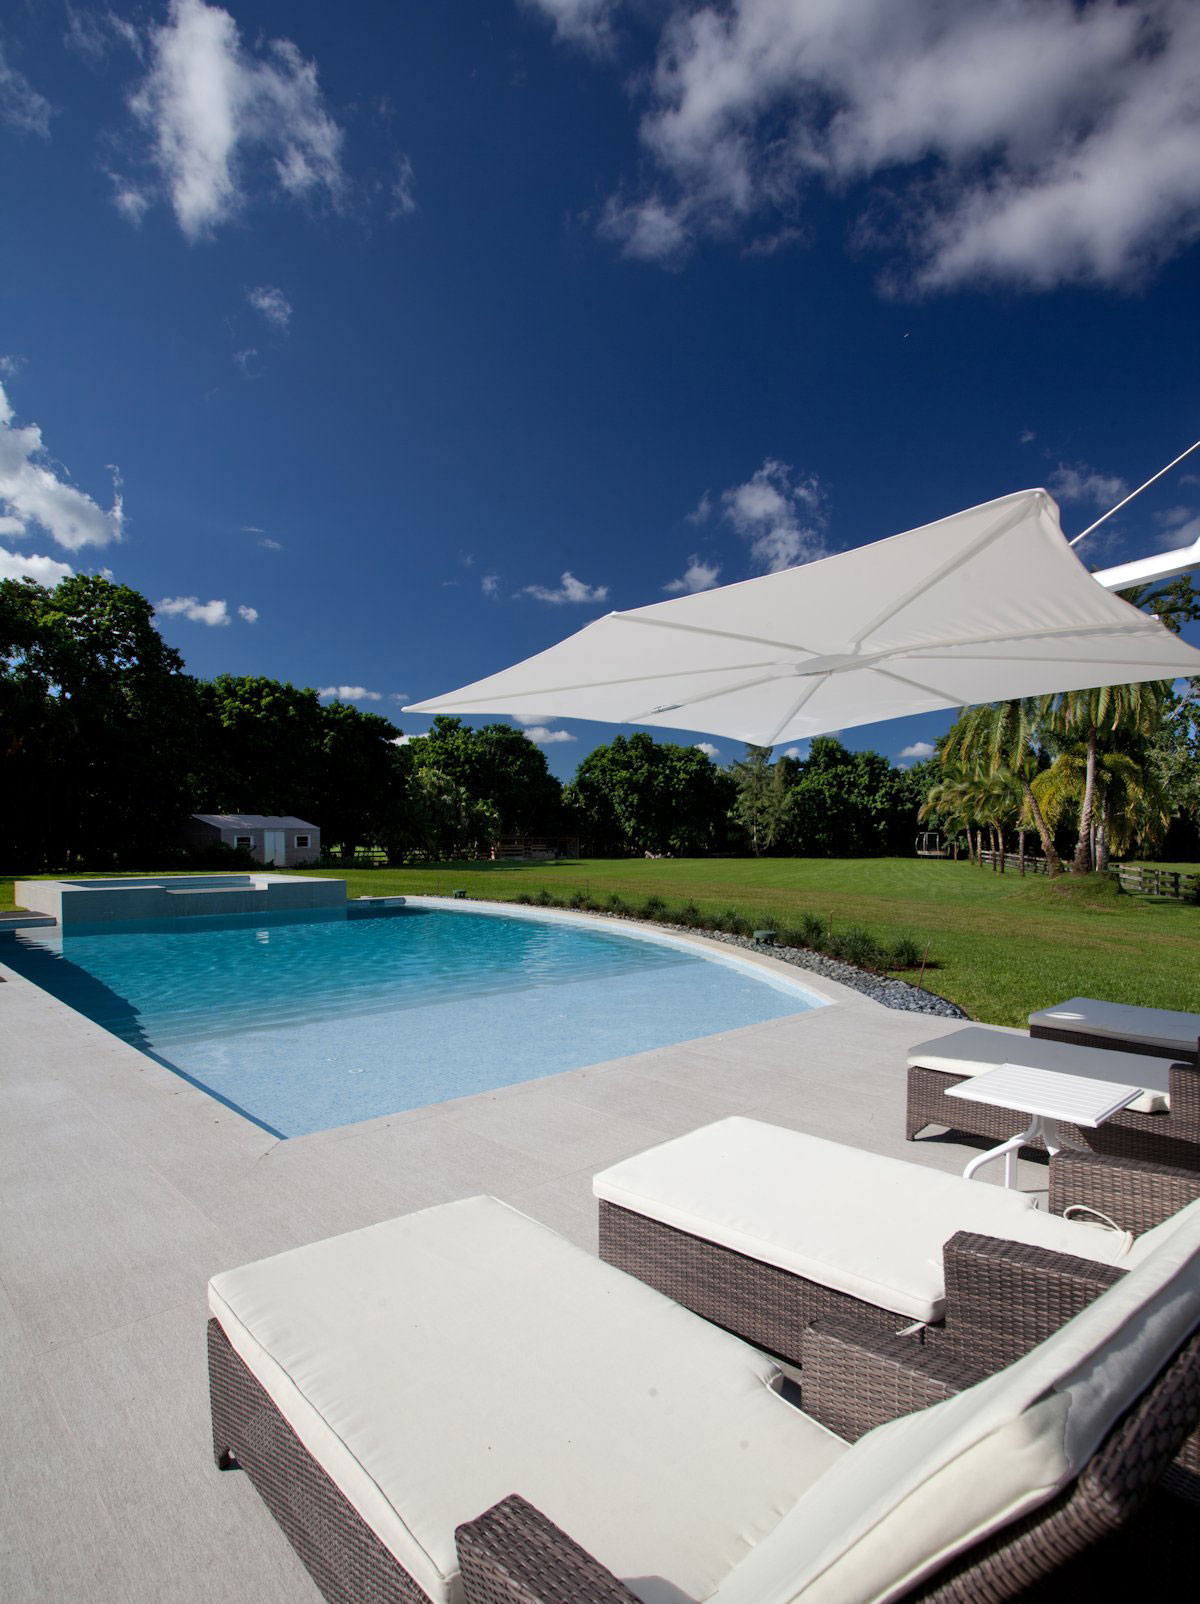 Pool, Garden Furniture, Modern Retreat in Davie, Florida